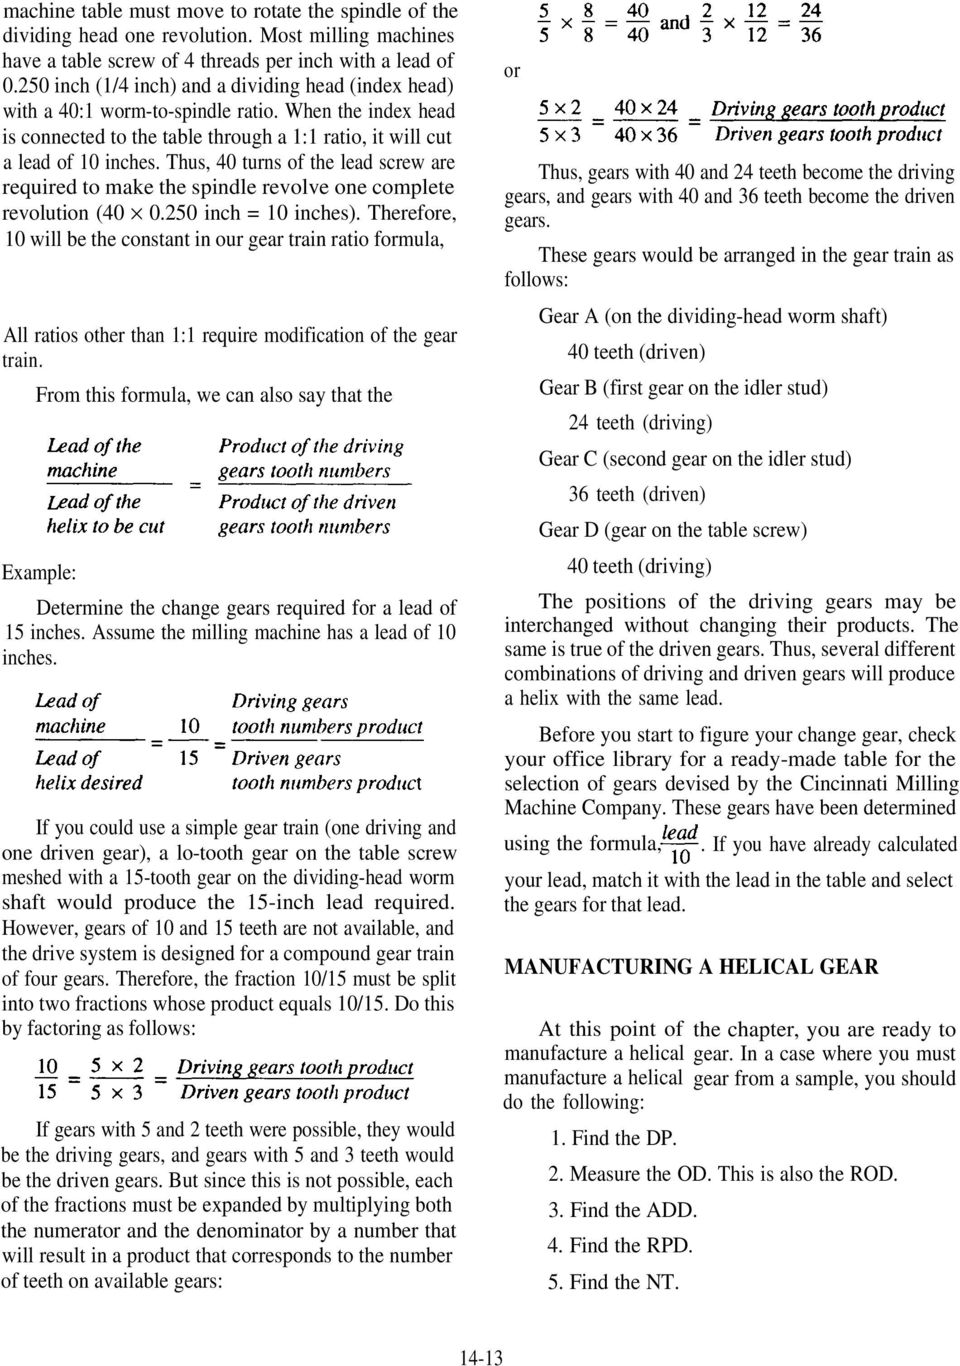 GEARS AND GEAR CUTTING - PDF